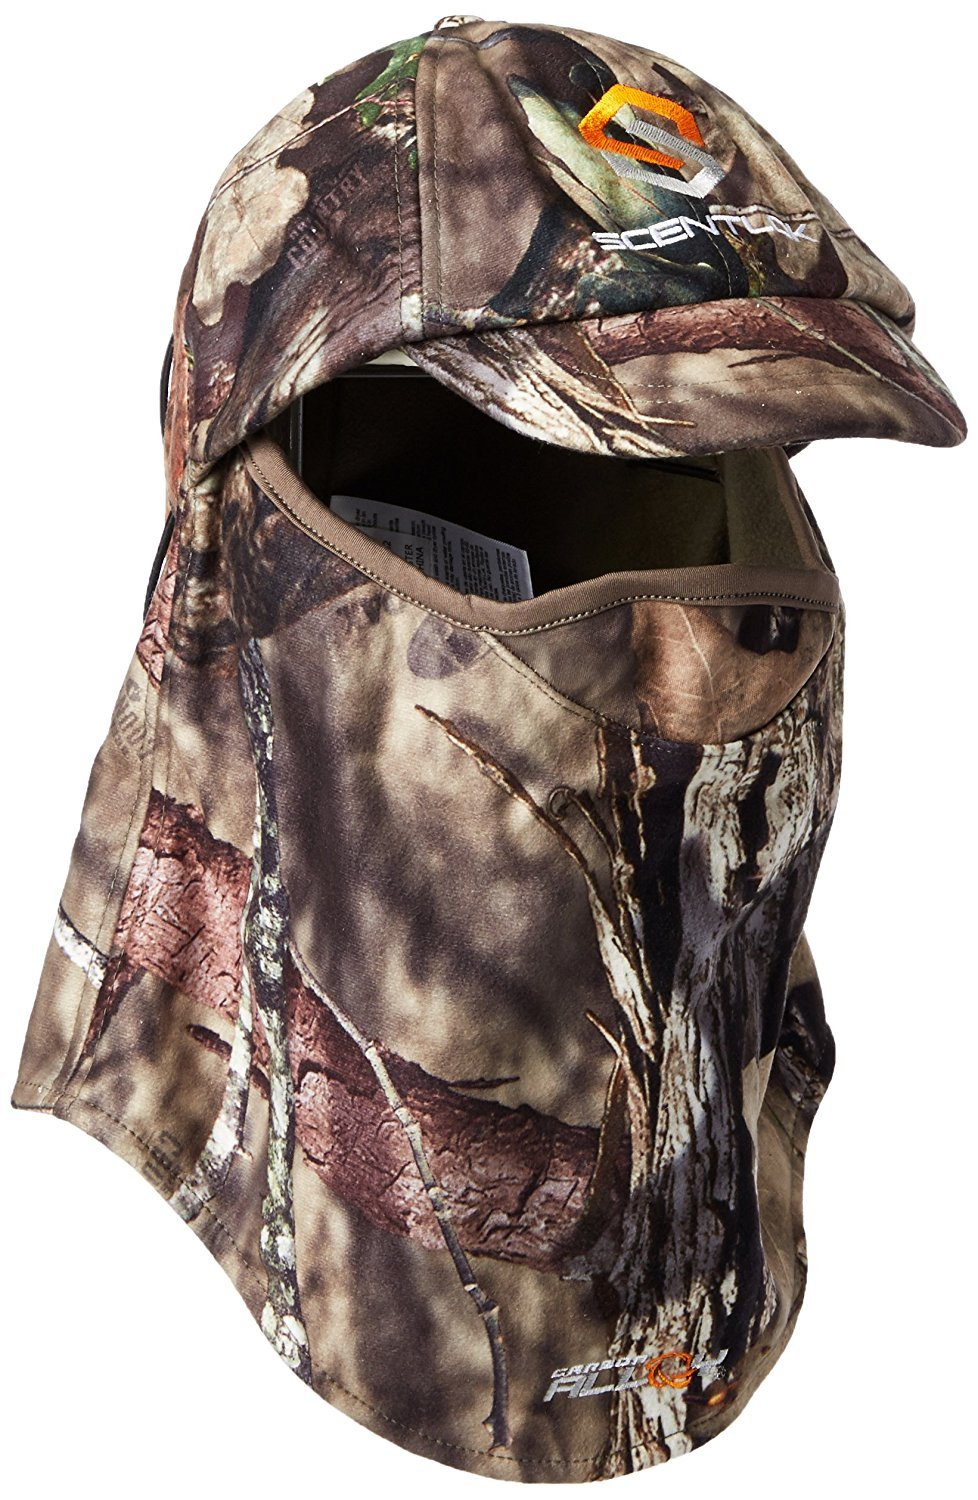 LongLong Summer Face Scarf Mask - Dust, Windproof, Breathable and